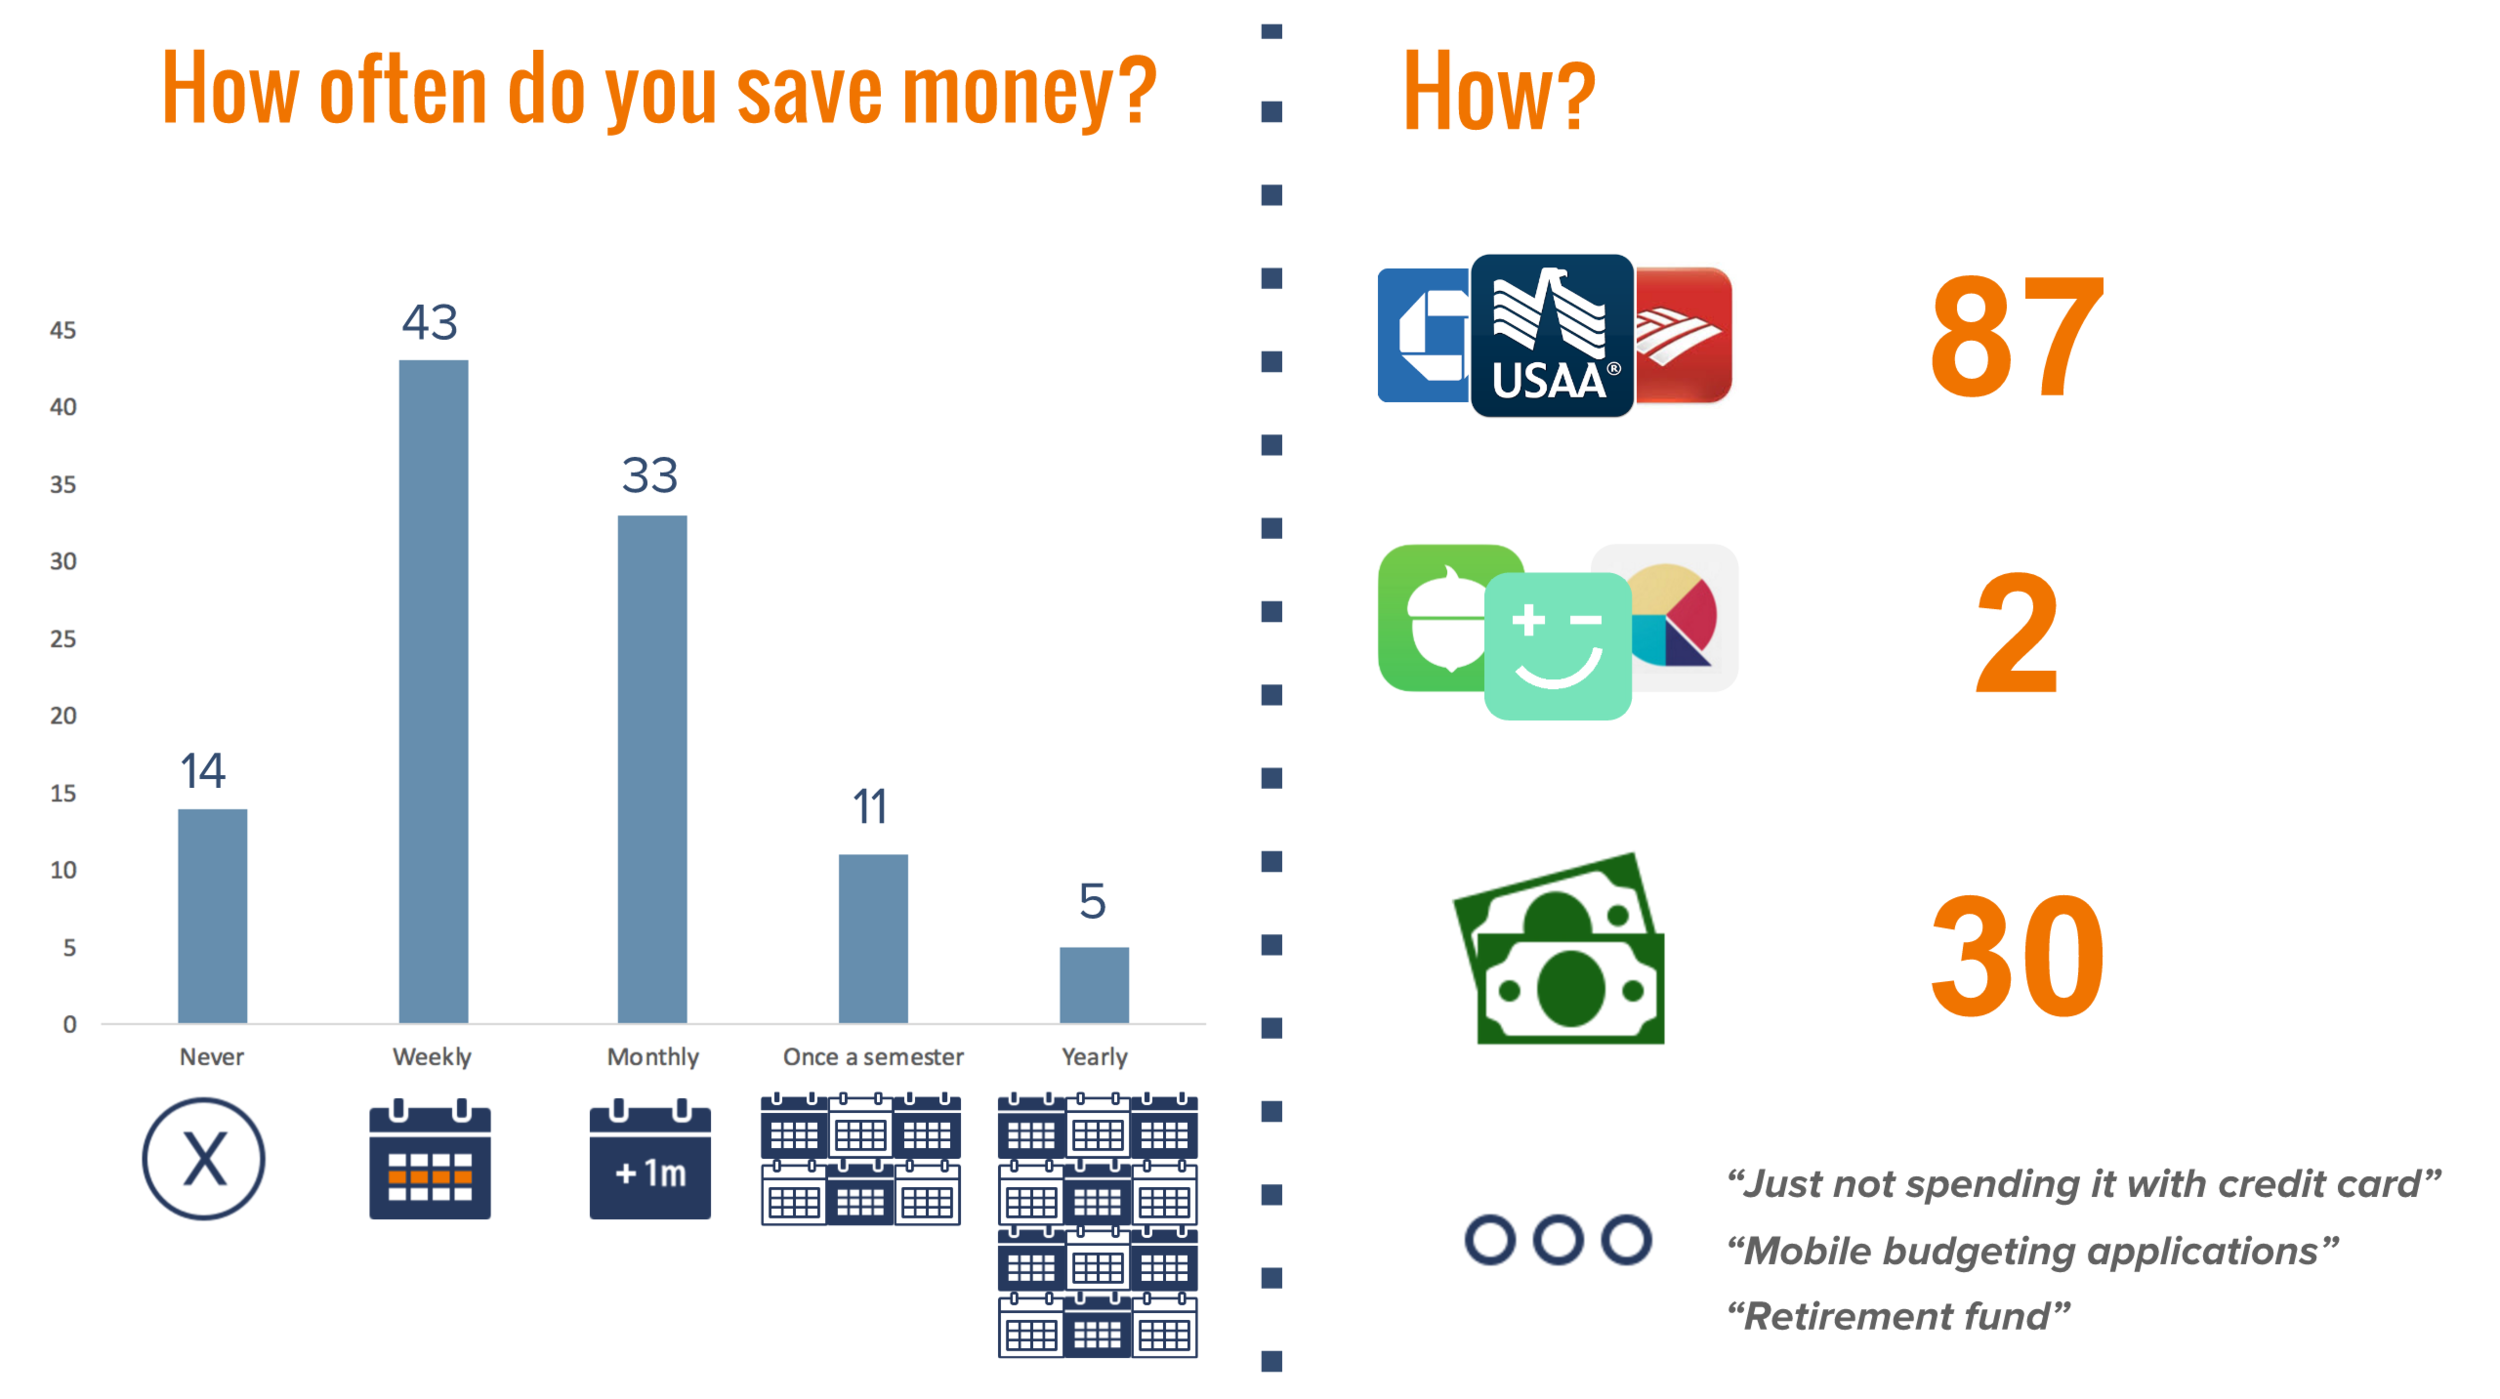 According to our survey, most respondents save weekly. 87 respondents save with banking apps, 2 are using mobile applications that encourage saving, and 30 said they save with cash.